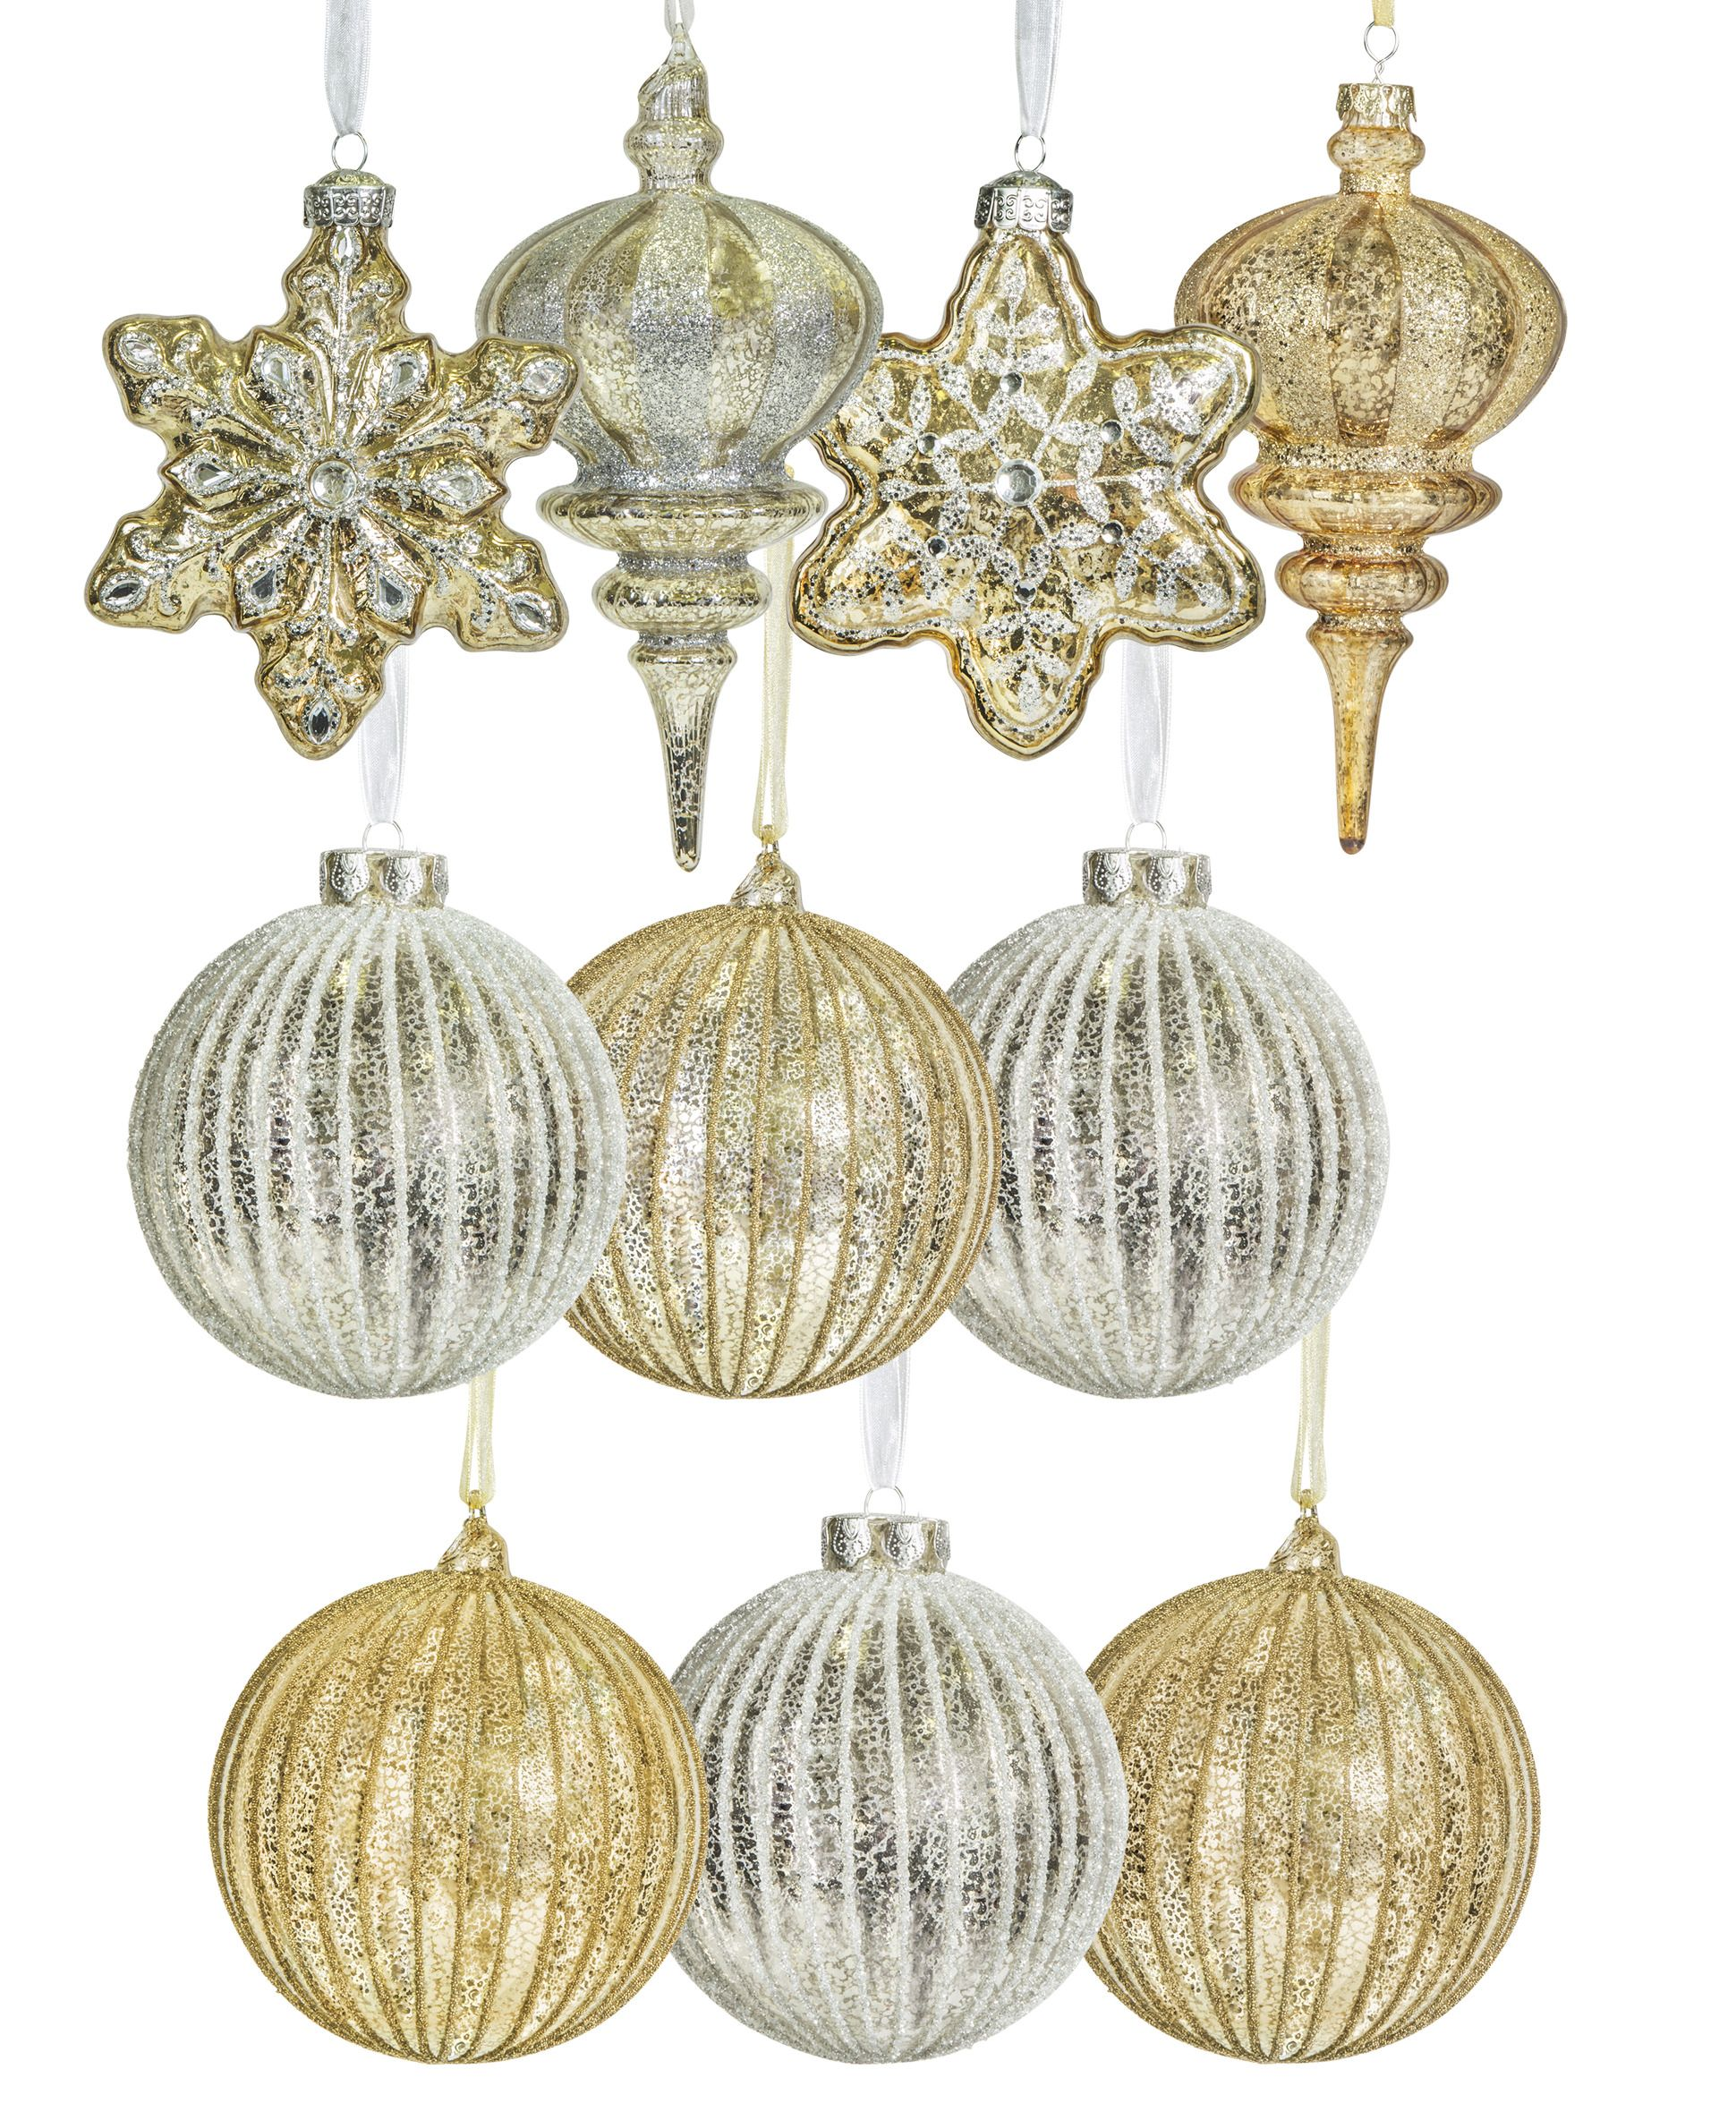 Gold and Silver Glass Ornament Set Christmas tree